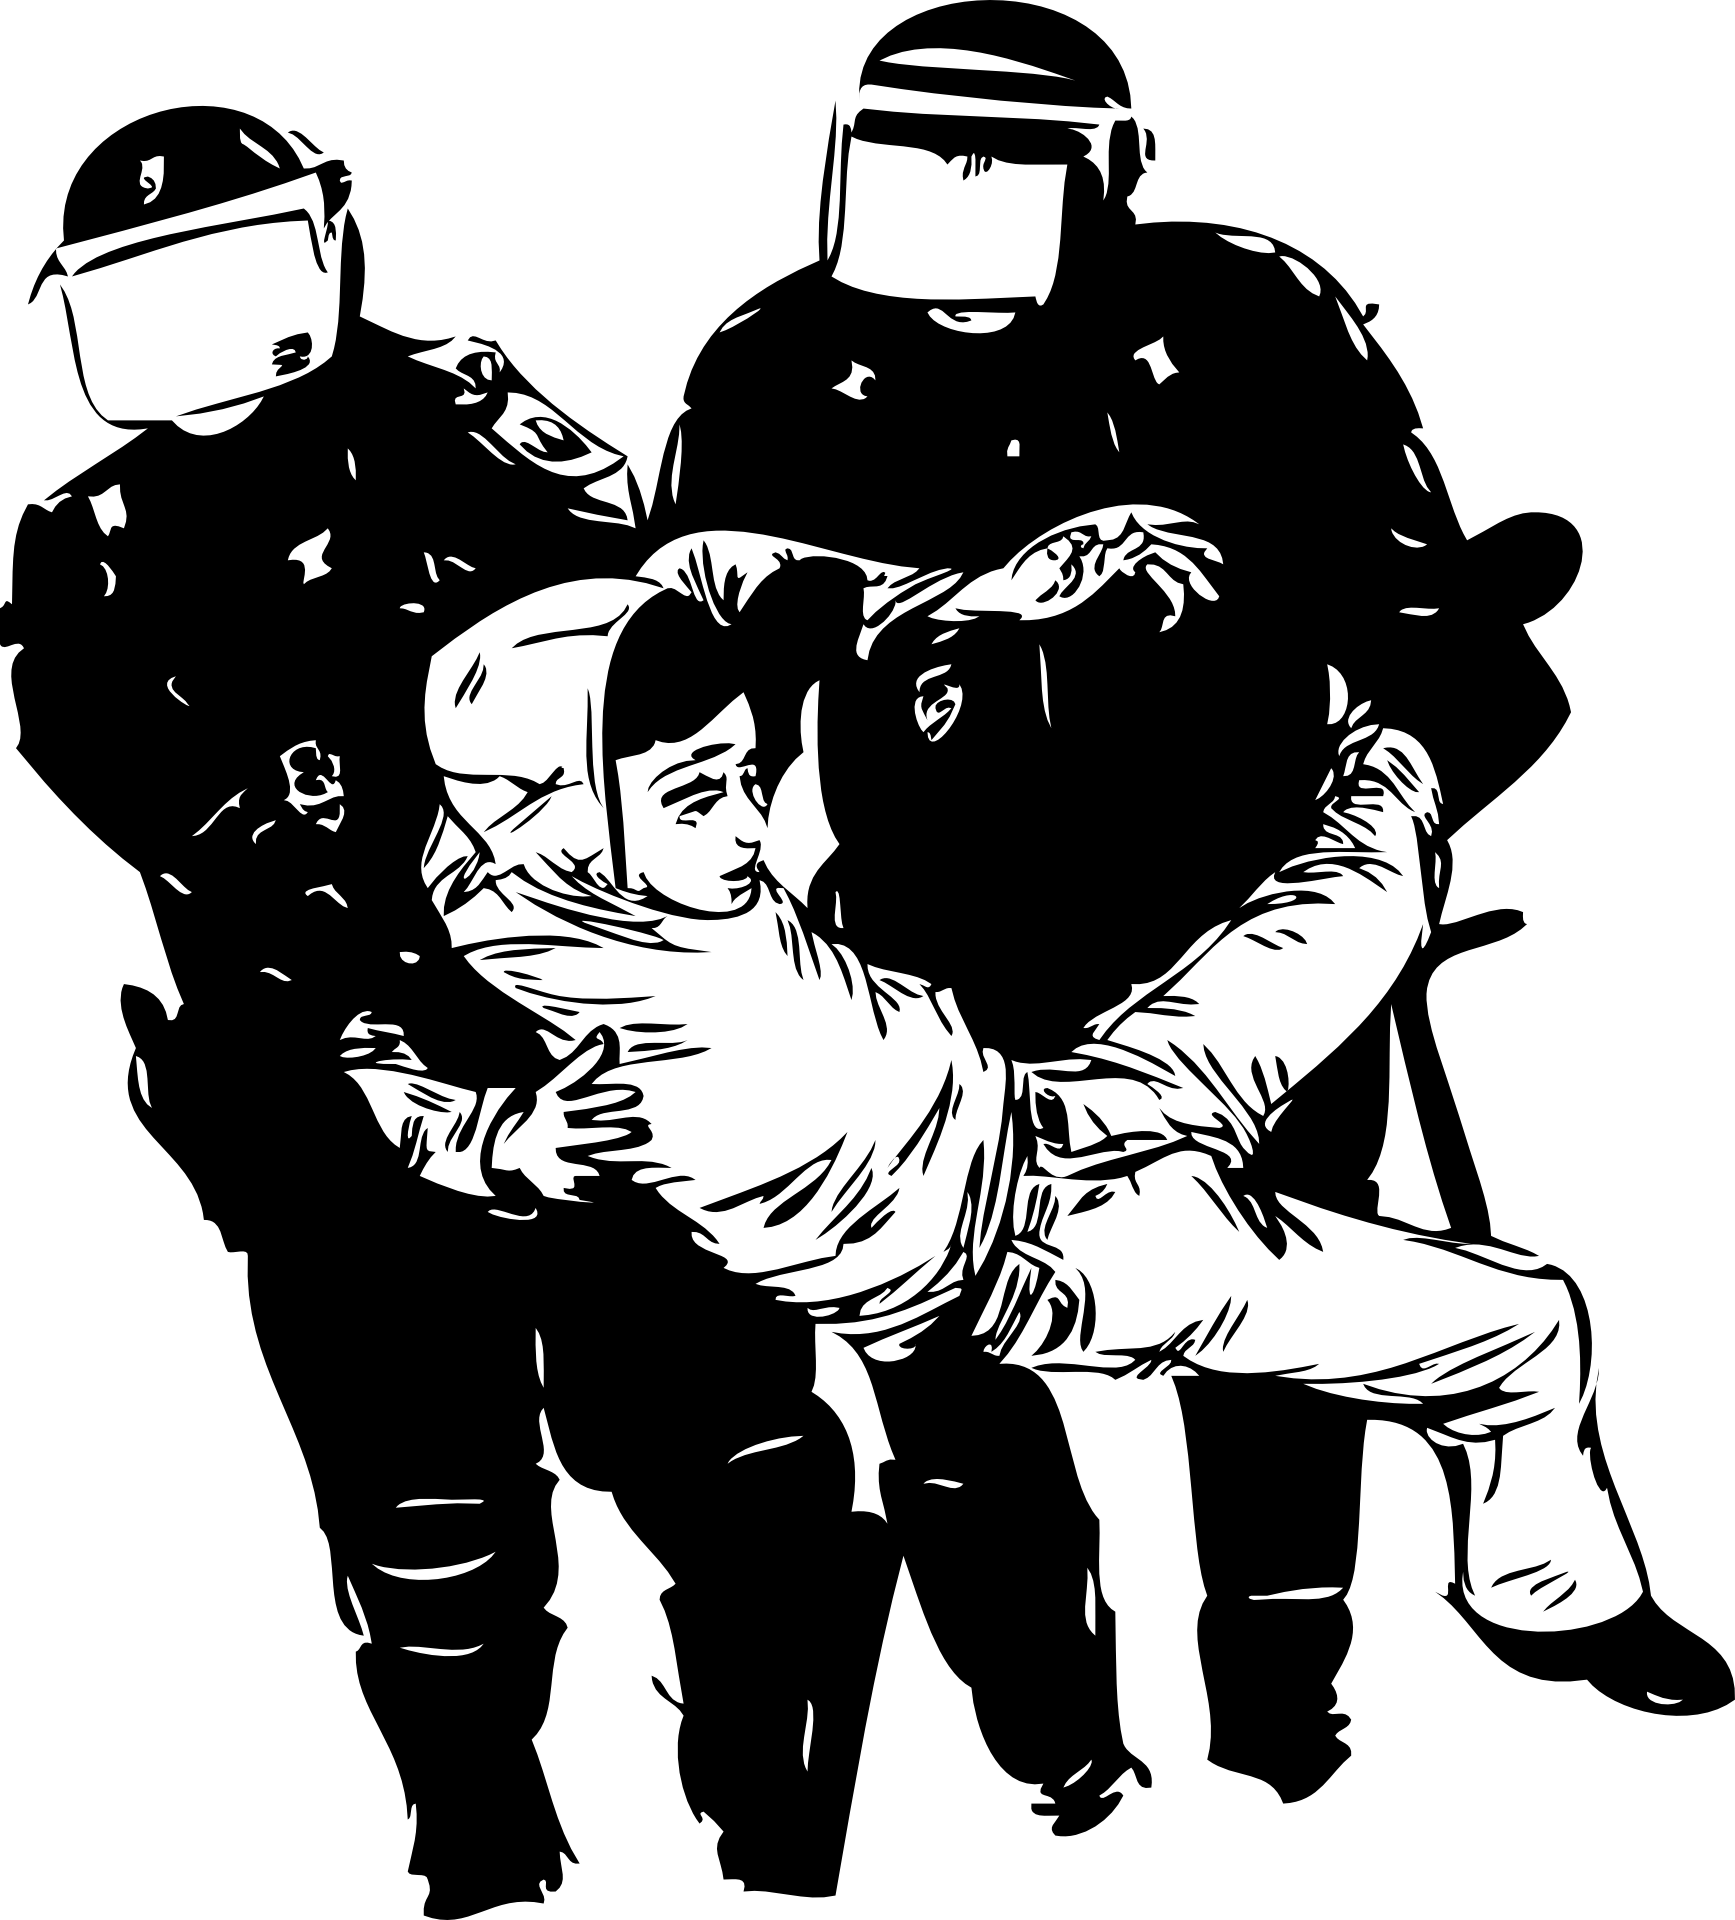 image free download Ethical Implications of Victim Blaming in Cases of Police Brutality